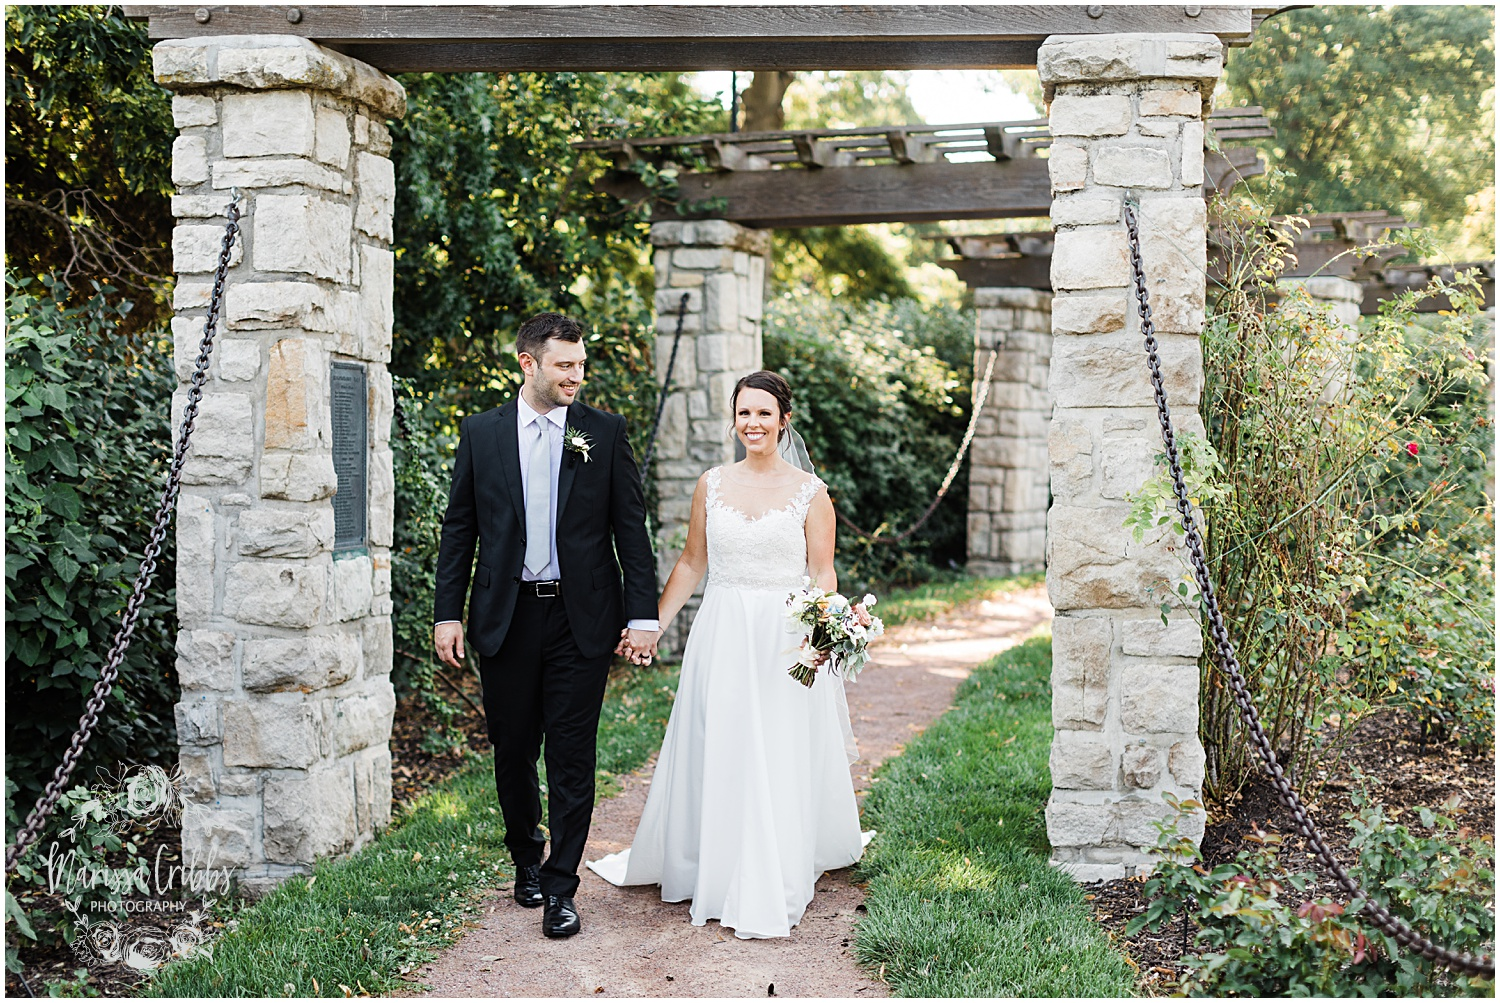 KELLY & MITCH MARRIED BLOG | MARISSA CRIBBS PHOTOGRAPHY | THE EVERLY EVENT SPACE_8874.jpg